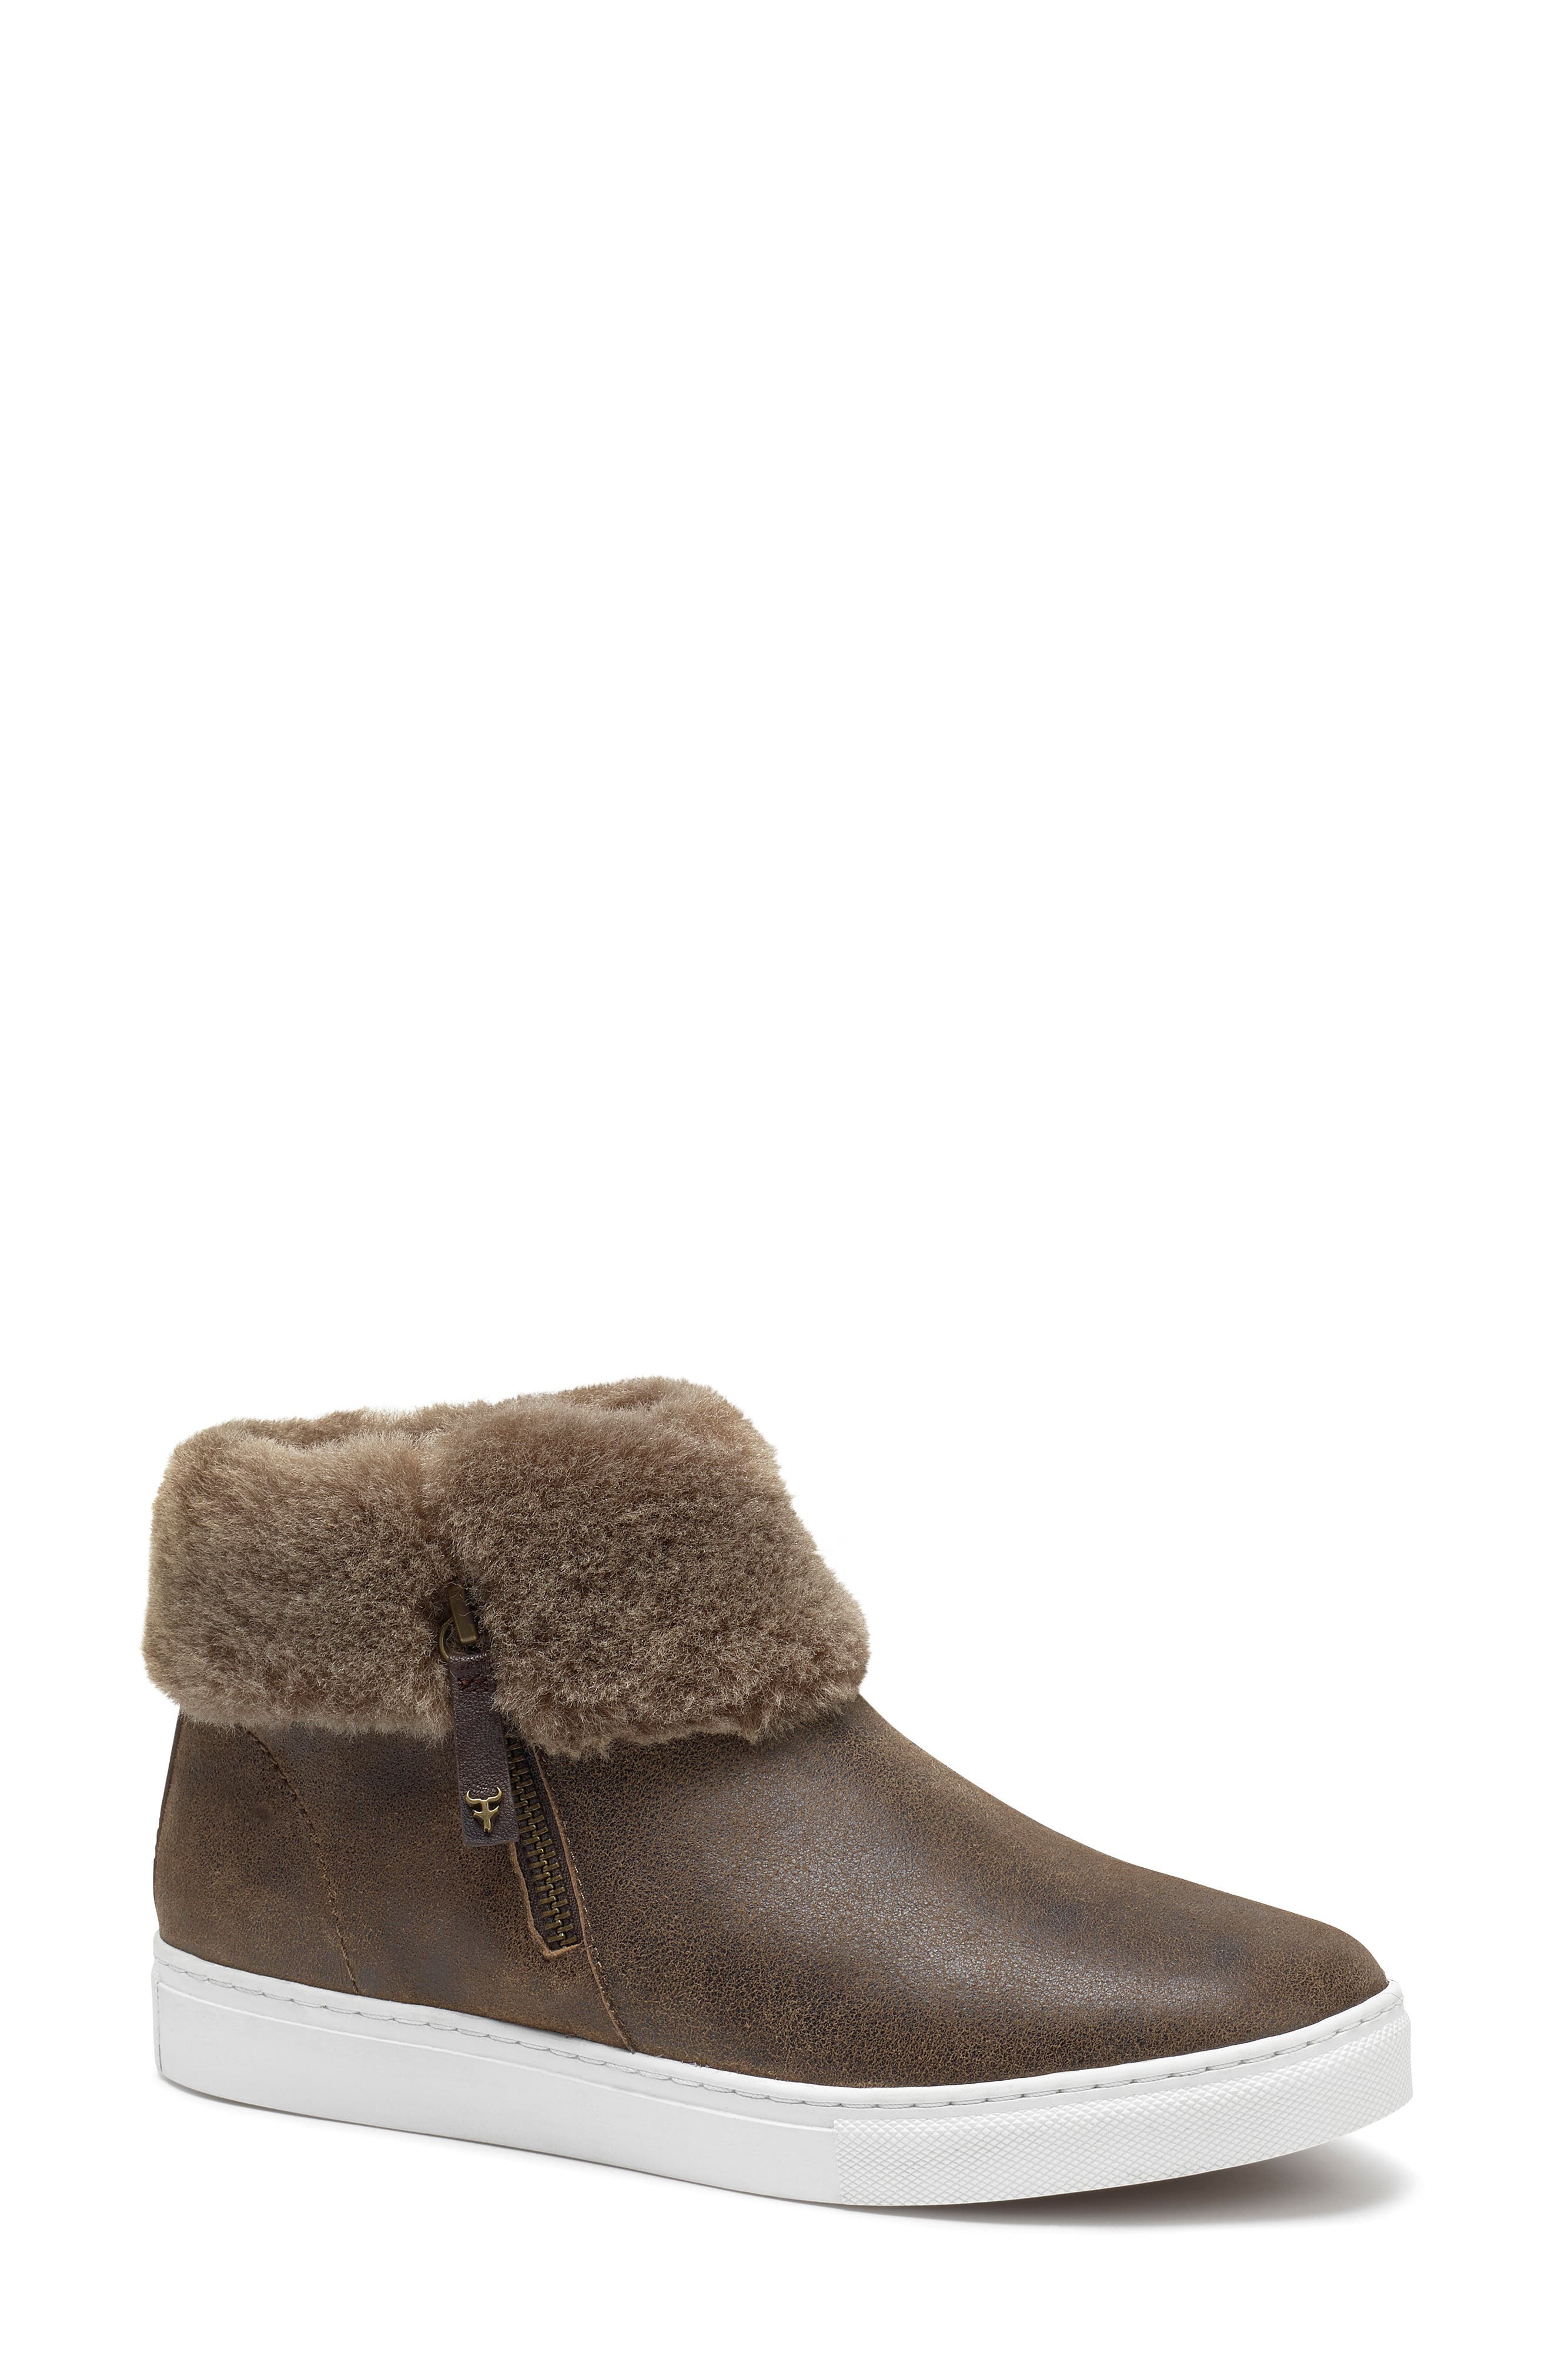 TRASK, Lexi Genuine Shearling Sneaker, Main thumbnail 1, color, BROWN LEATHER